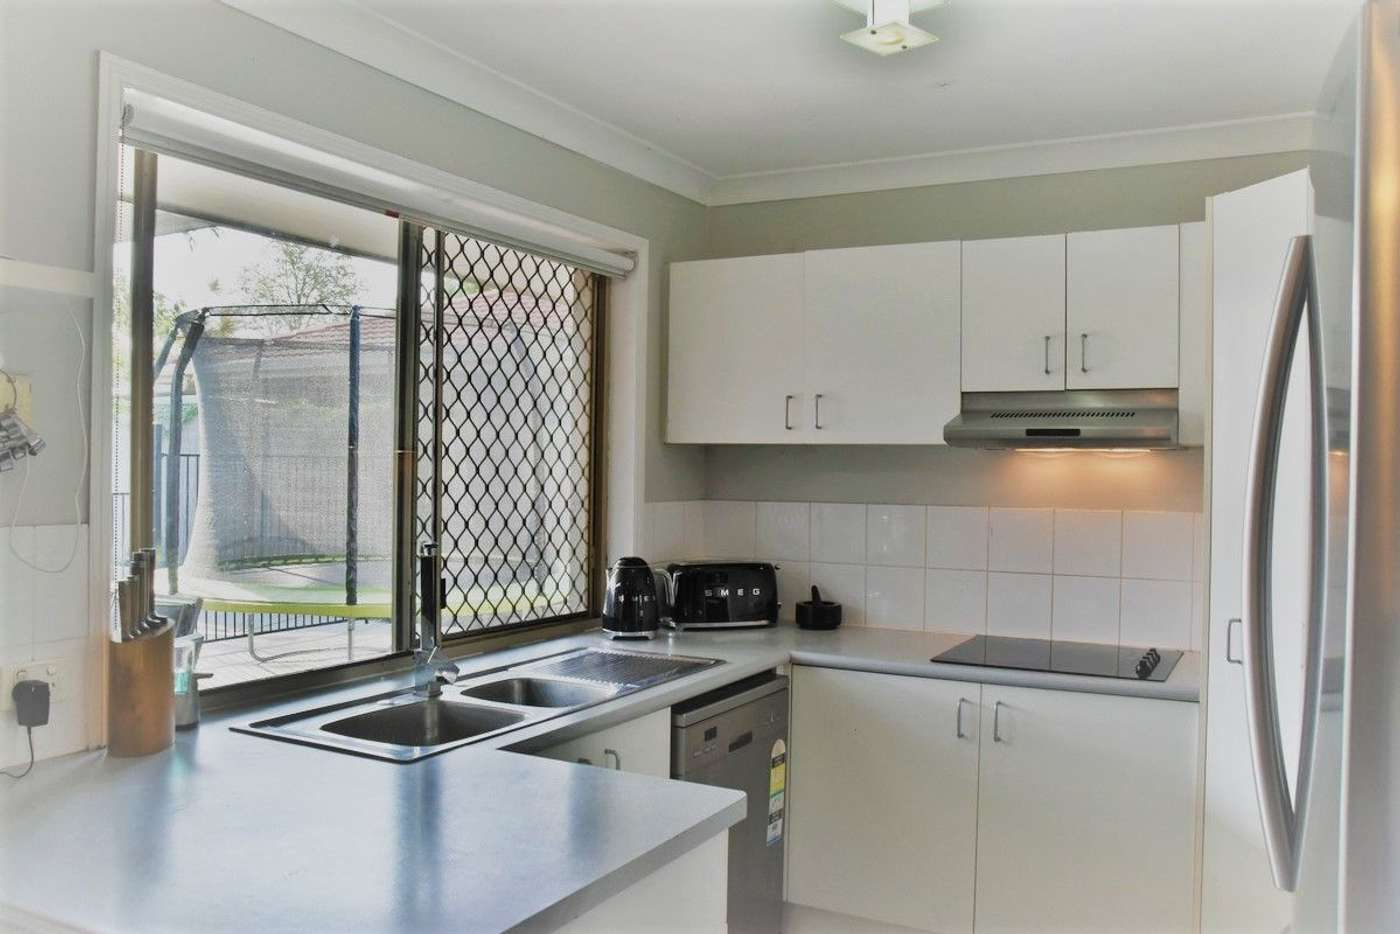 Seventh view of Homely house listing, 121 Pohon Drive, Tanah Merah QLD 4128